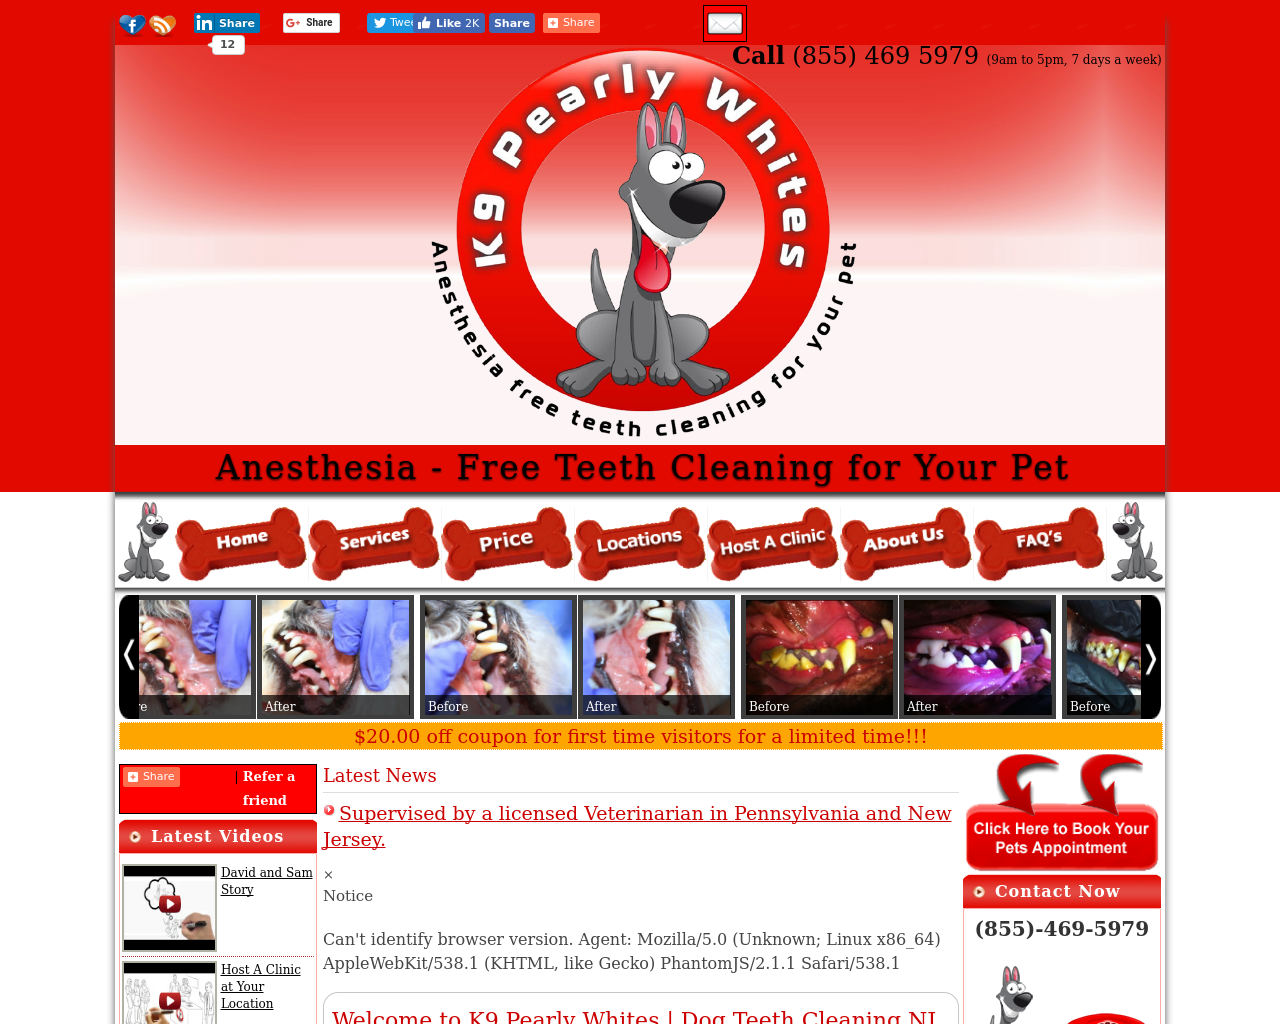 K9-Pearly-Whites-Advertising-Reviews-Pricing